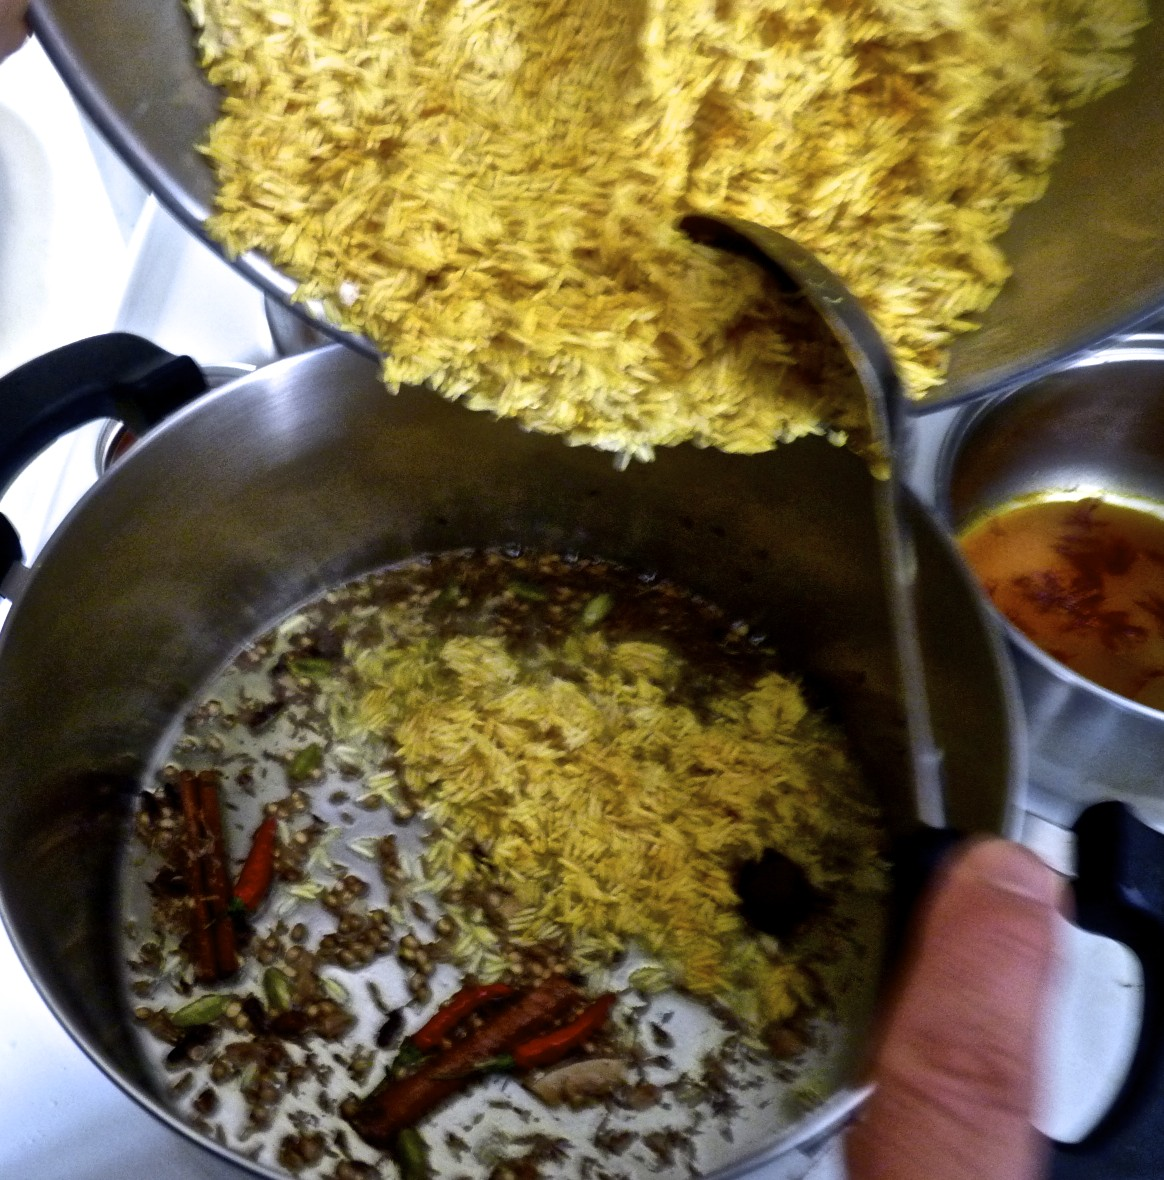 Then stir in the rice.